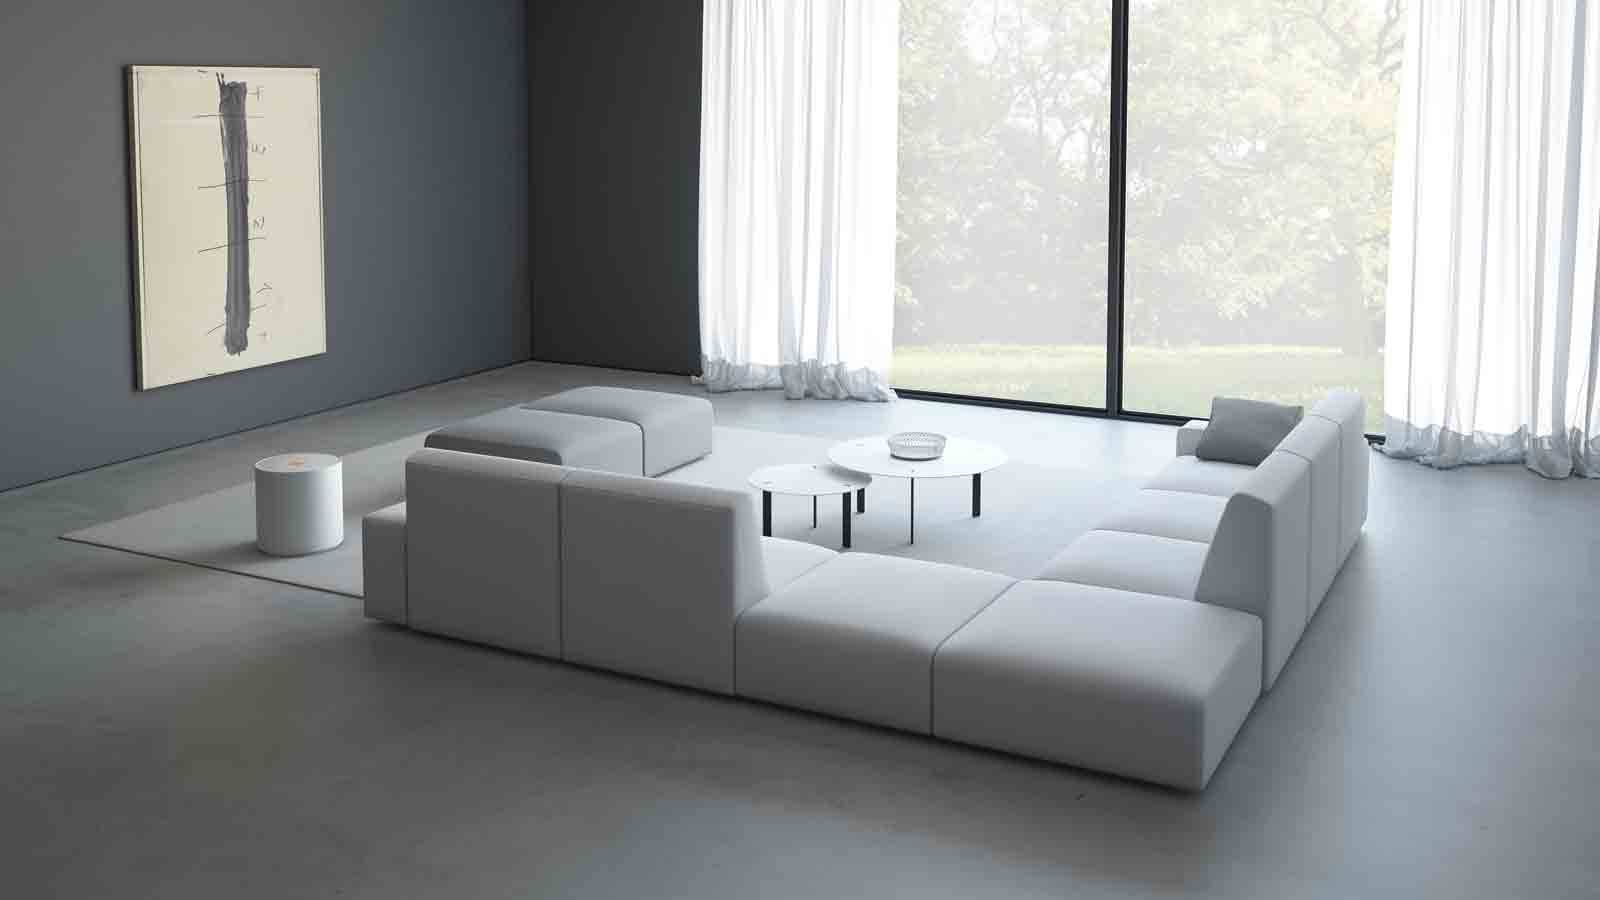 Viccarbe furniture-modern style